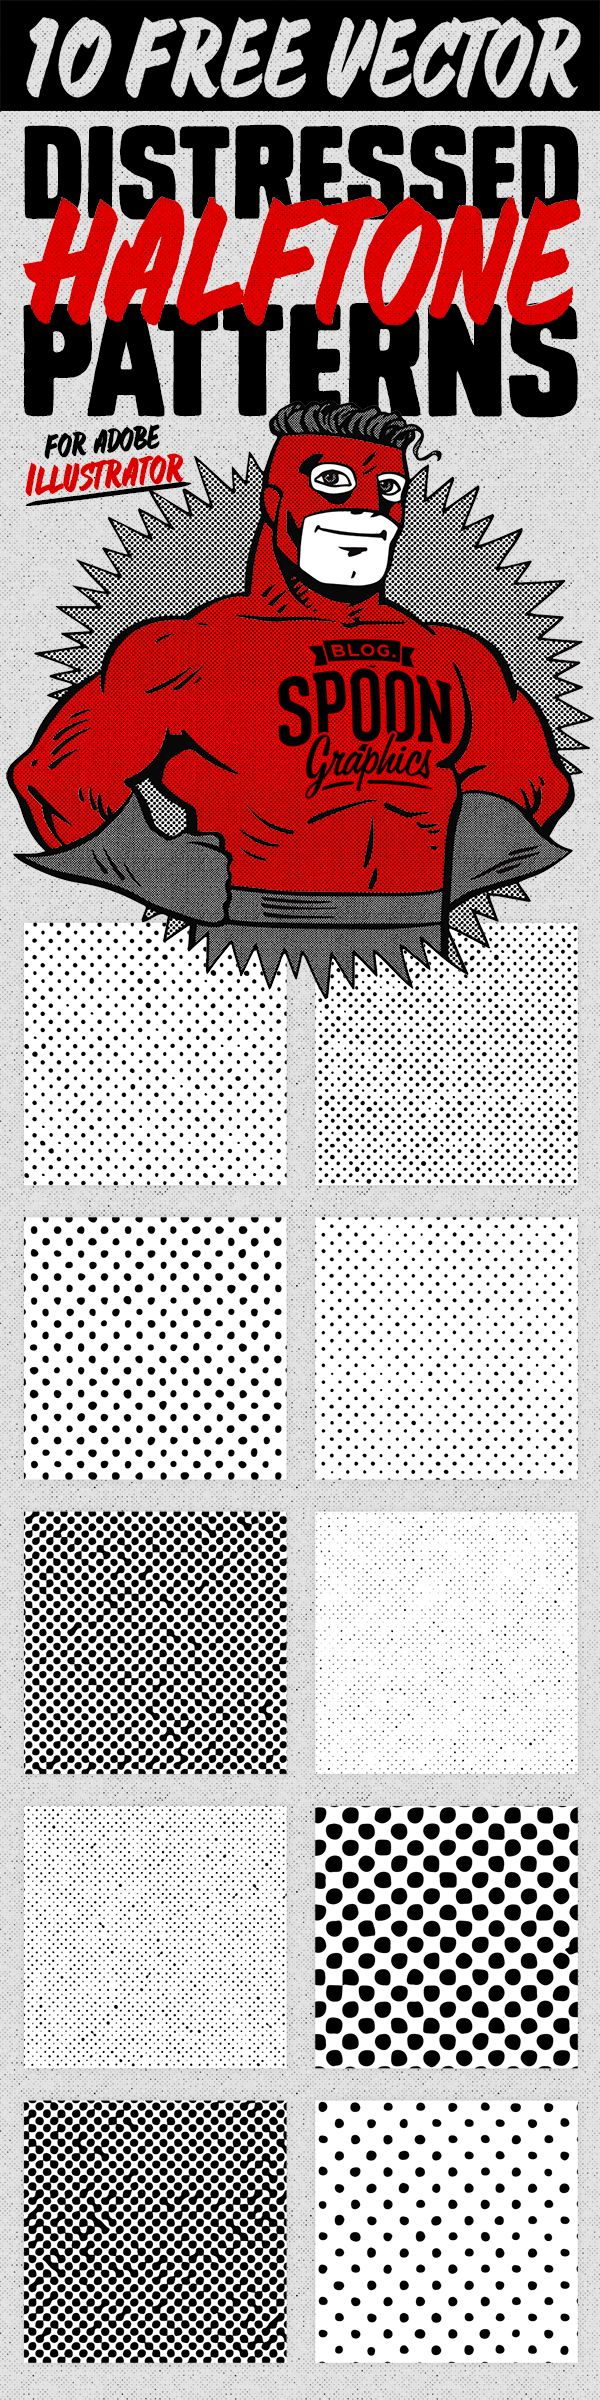 10 Free Distressed Vector Halftone Patterns (7 MB) | blog.spoongraphics.co.uk